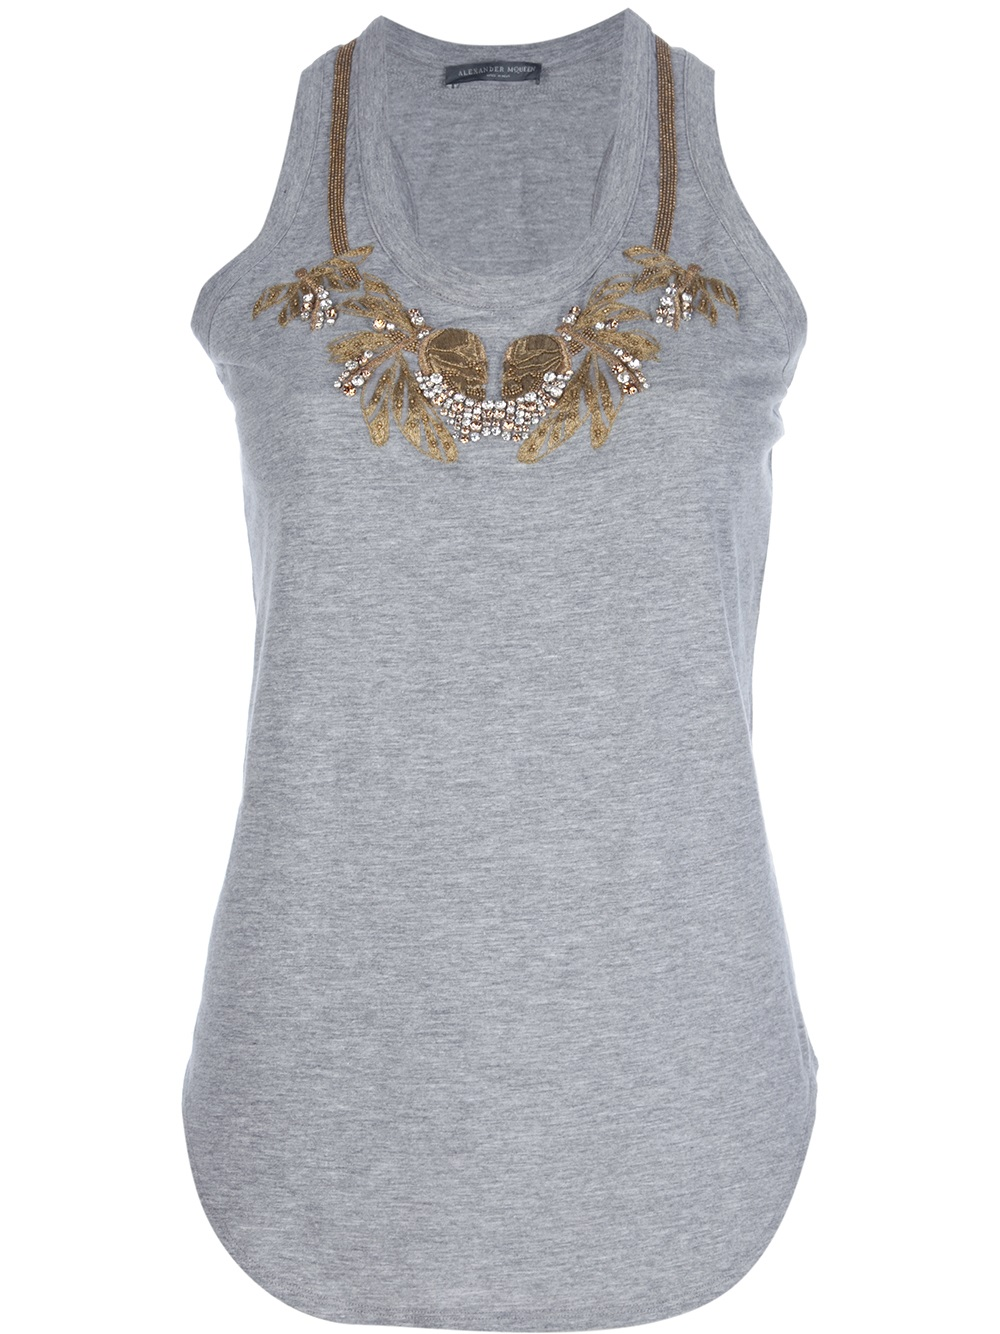 Sleeveless Blouse For Women